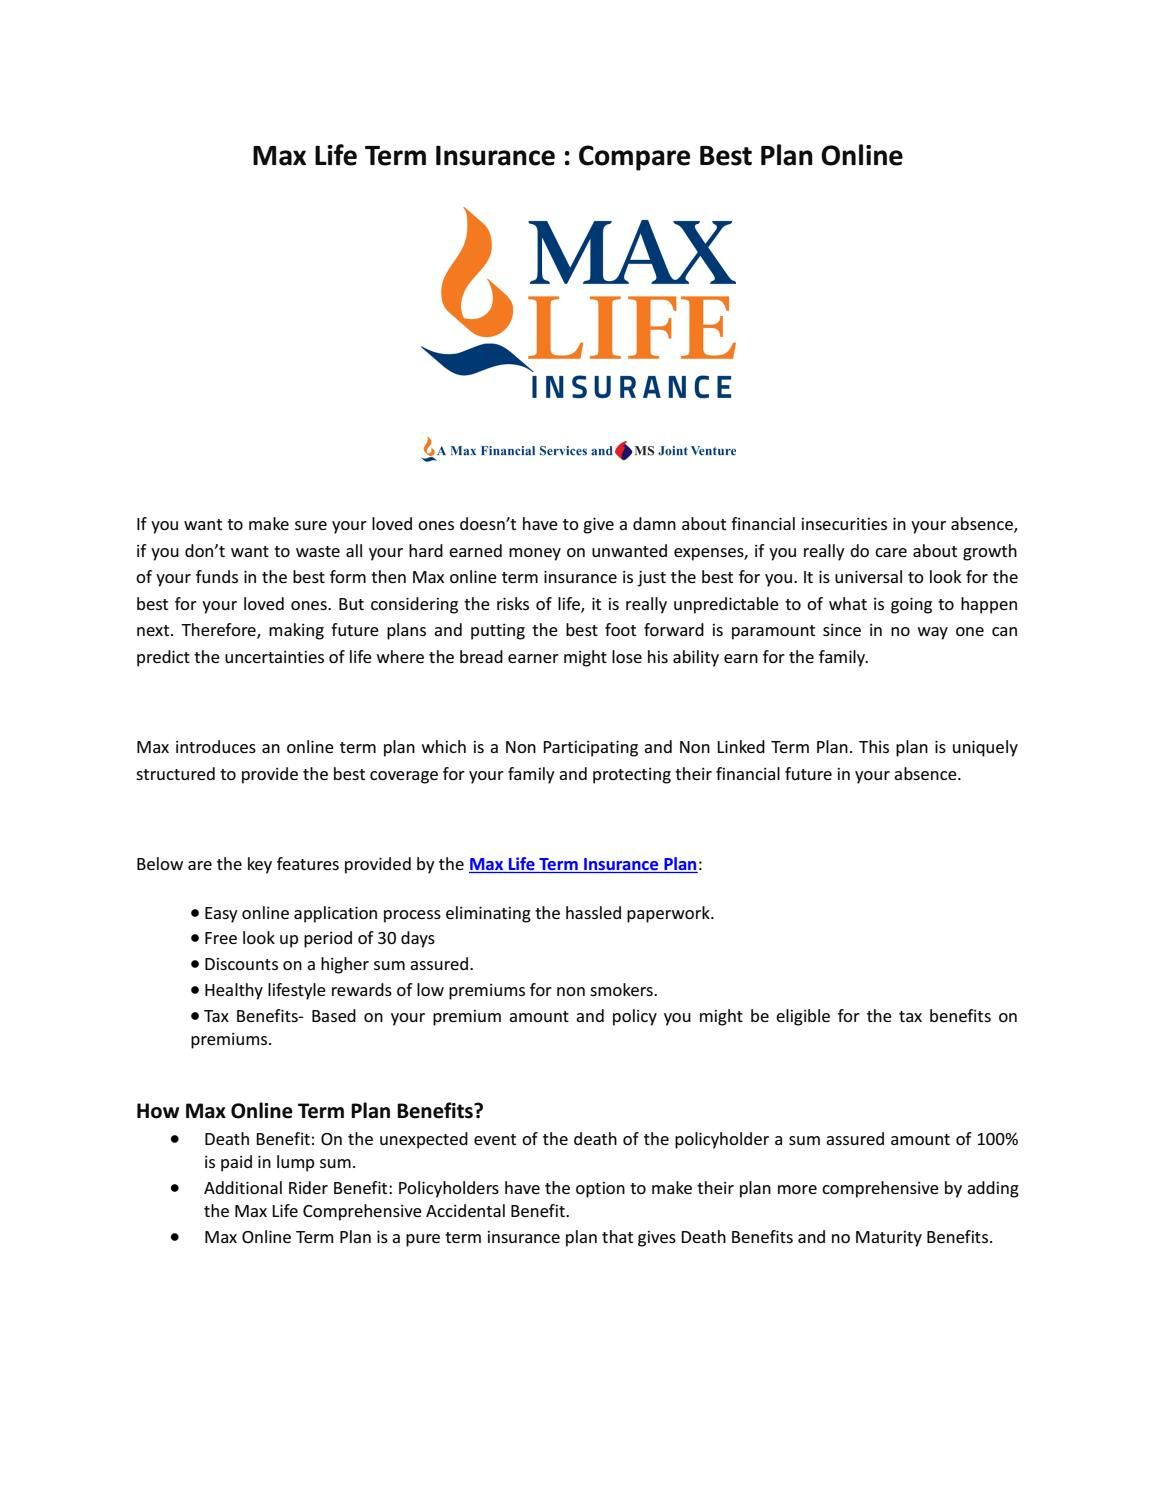 Max Life Term Insurance Plans Compare Online How To Plan Online Insurance Term Insurance